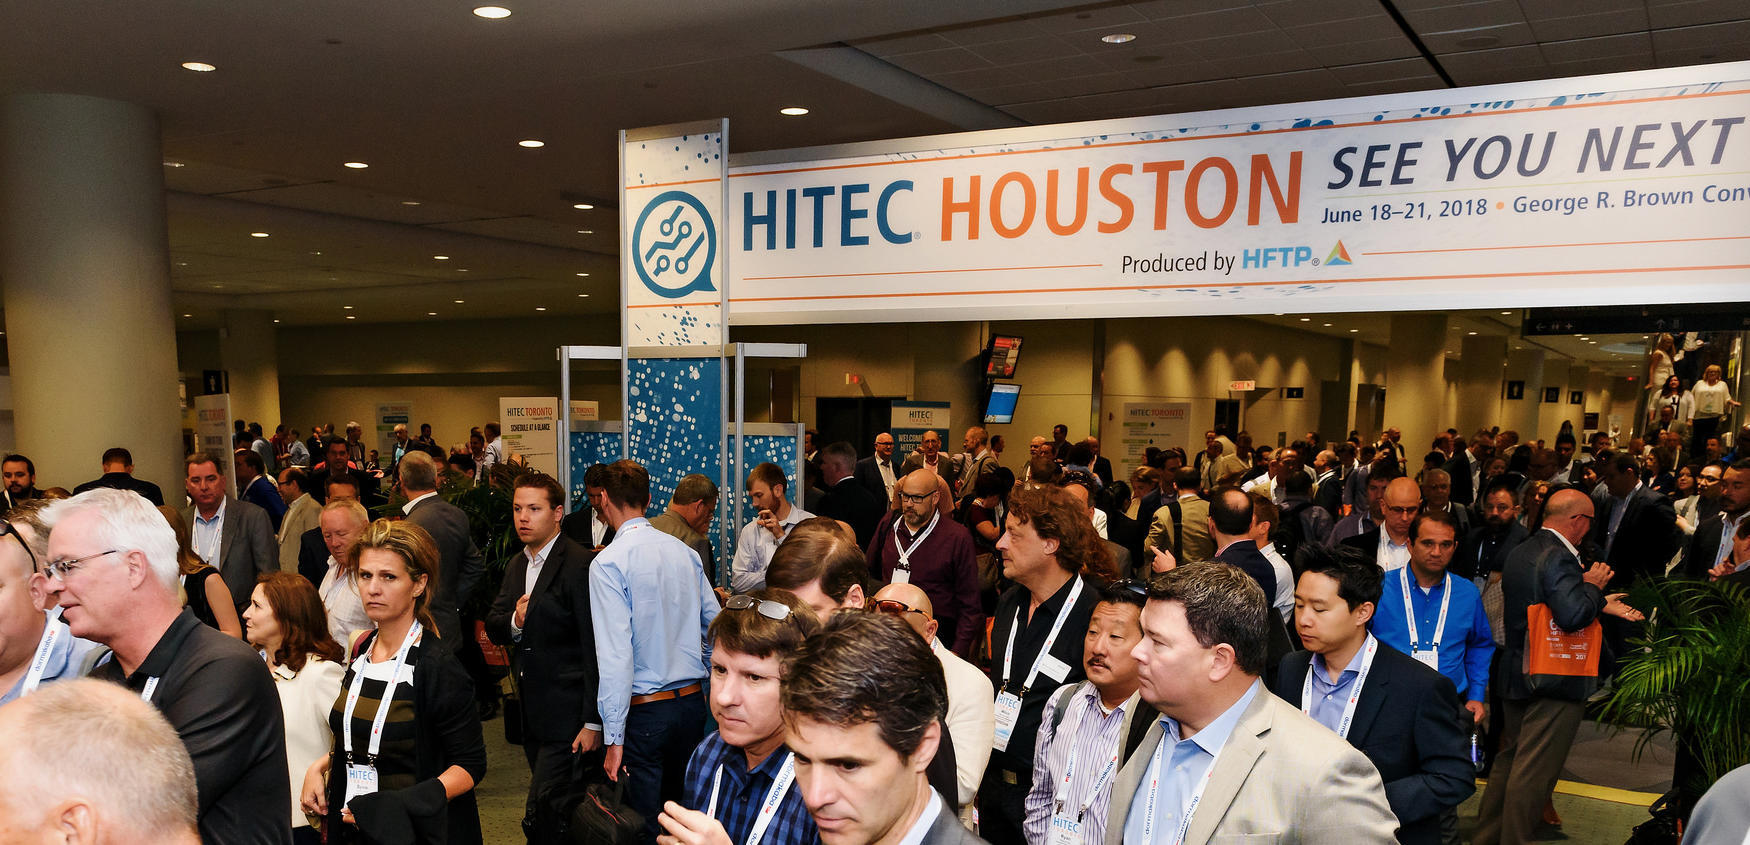 HITEC hospitality event attendees